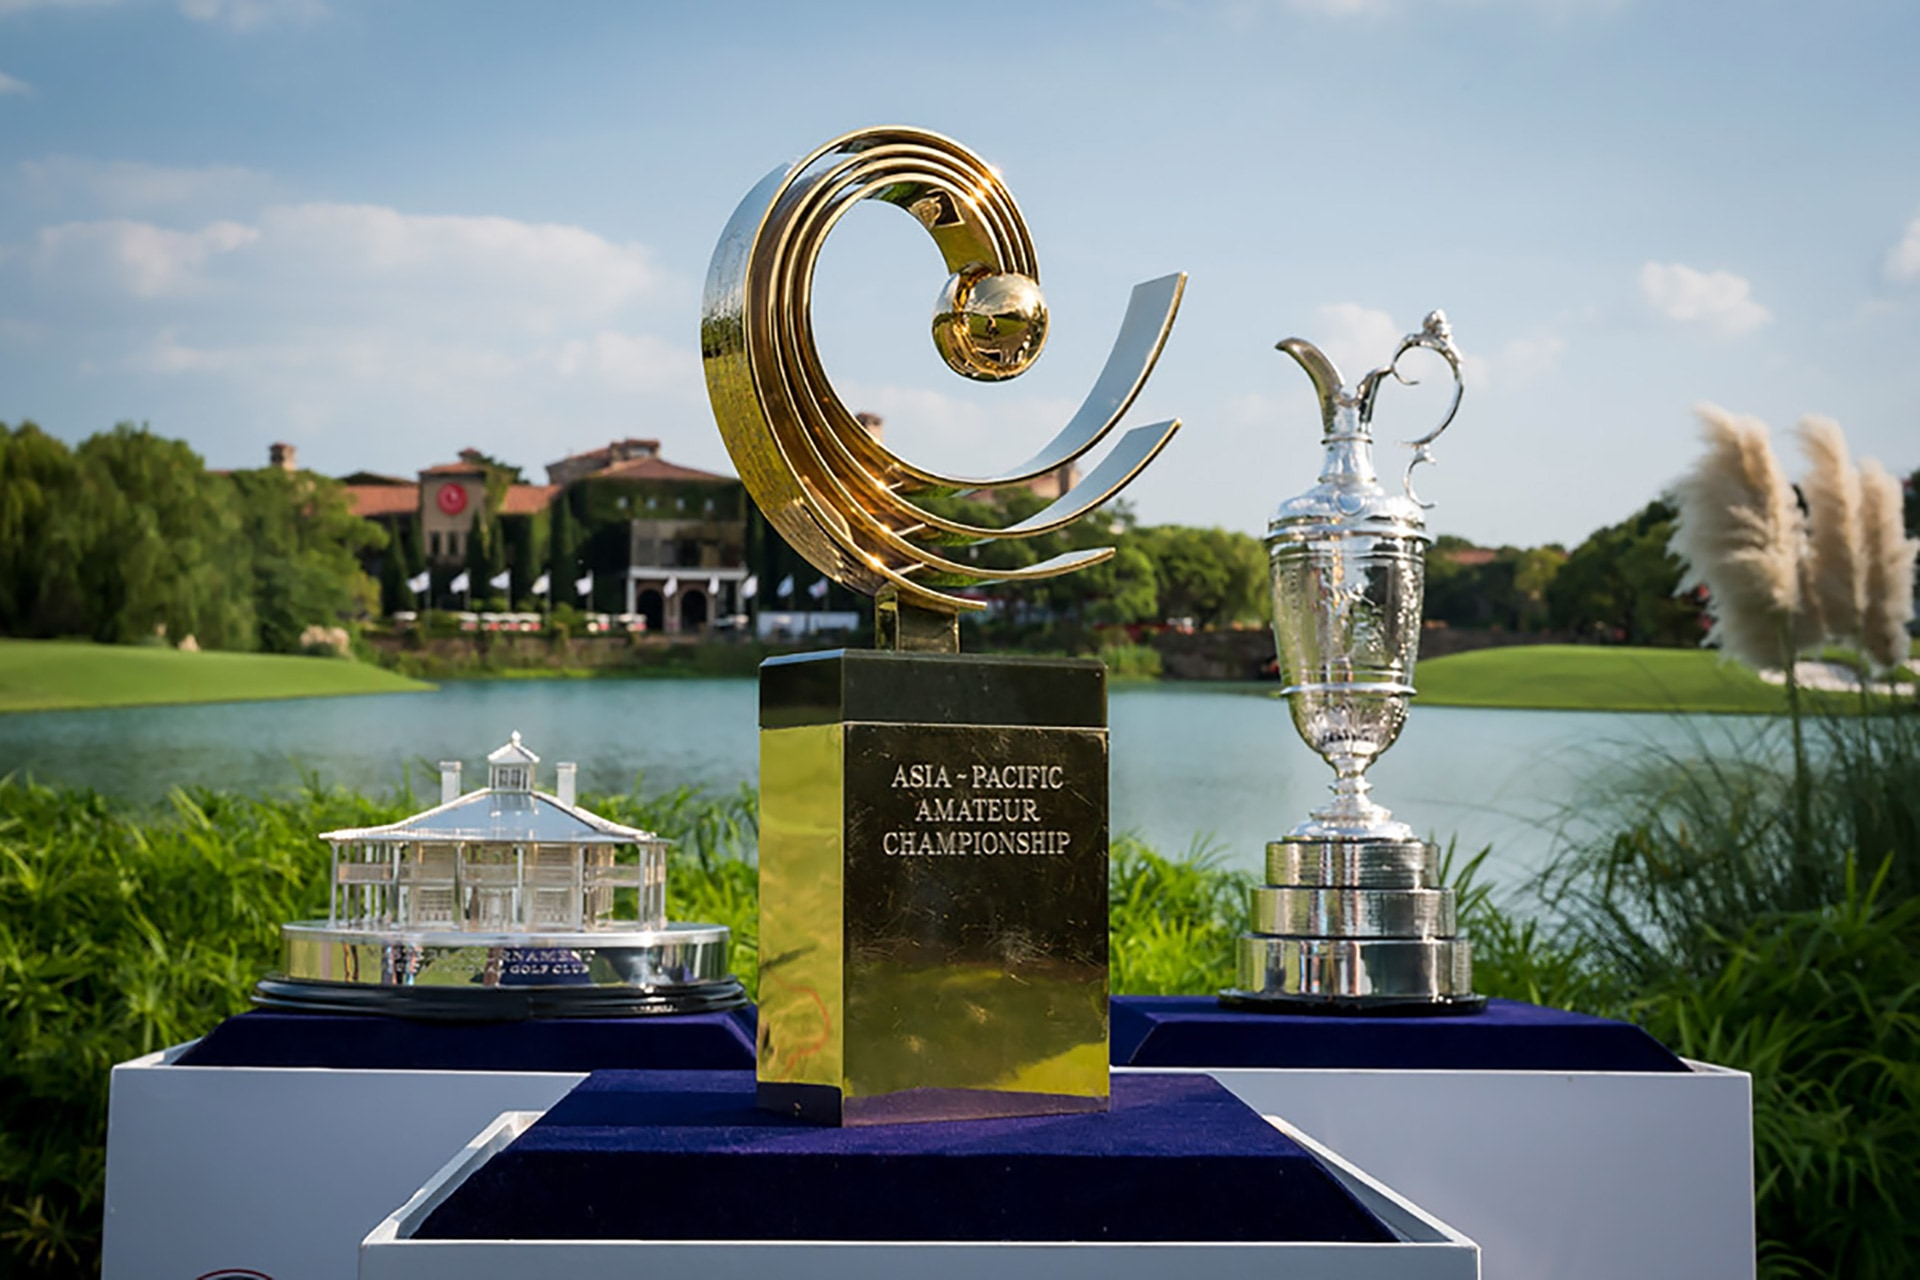 Asia Pacific Amateur Championship Trophy staged in front of Masters Trophy and the Claret Jug